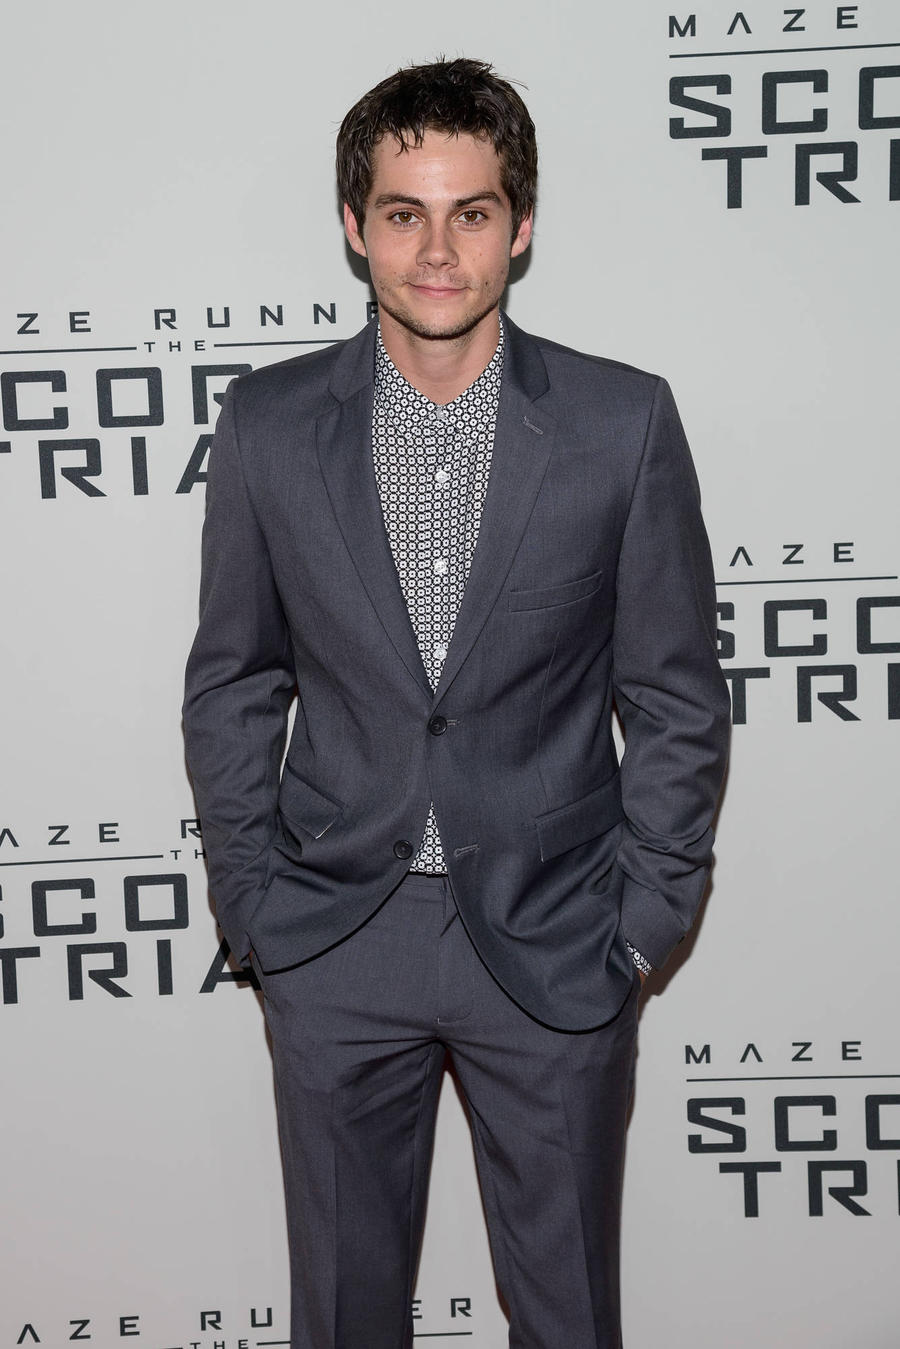 Dylan O'brien Nearing Maze Runner Return After Accident